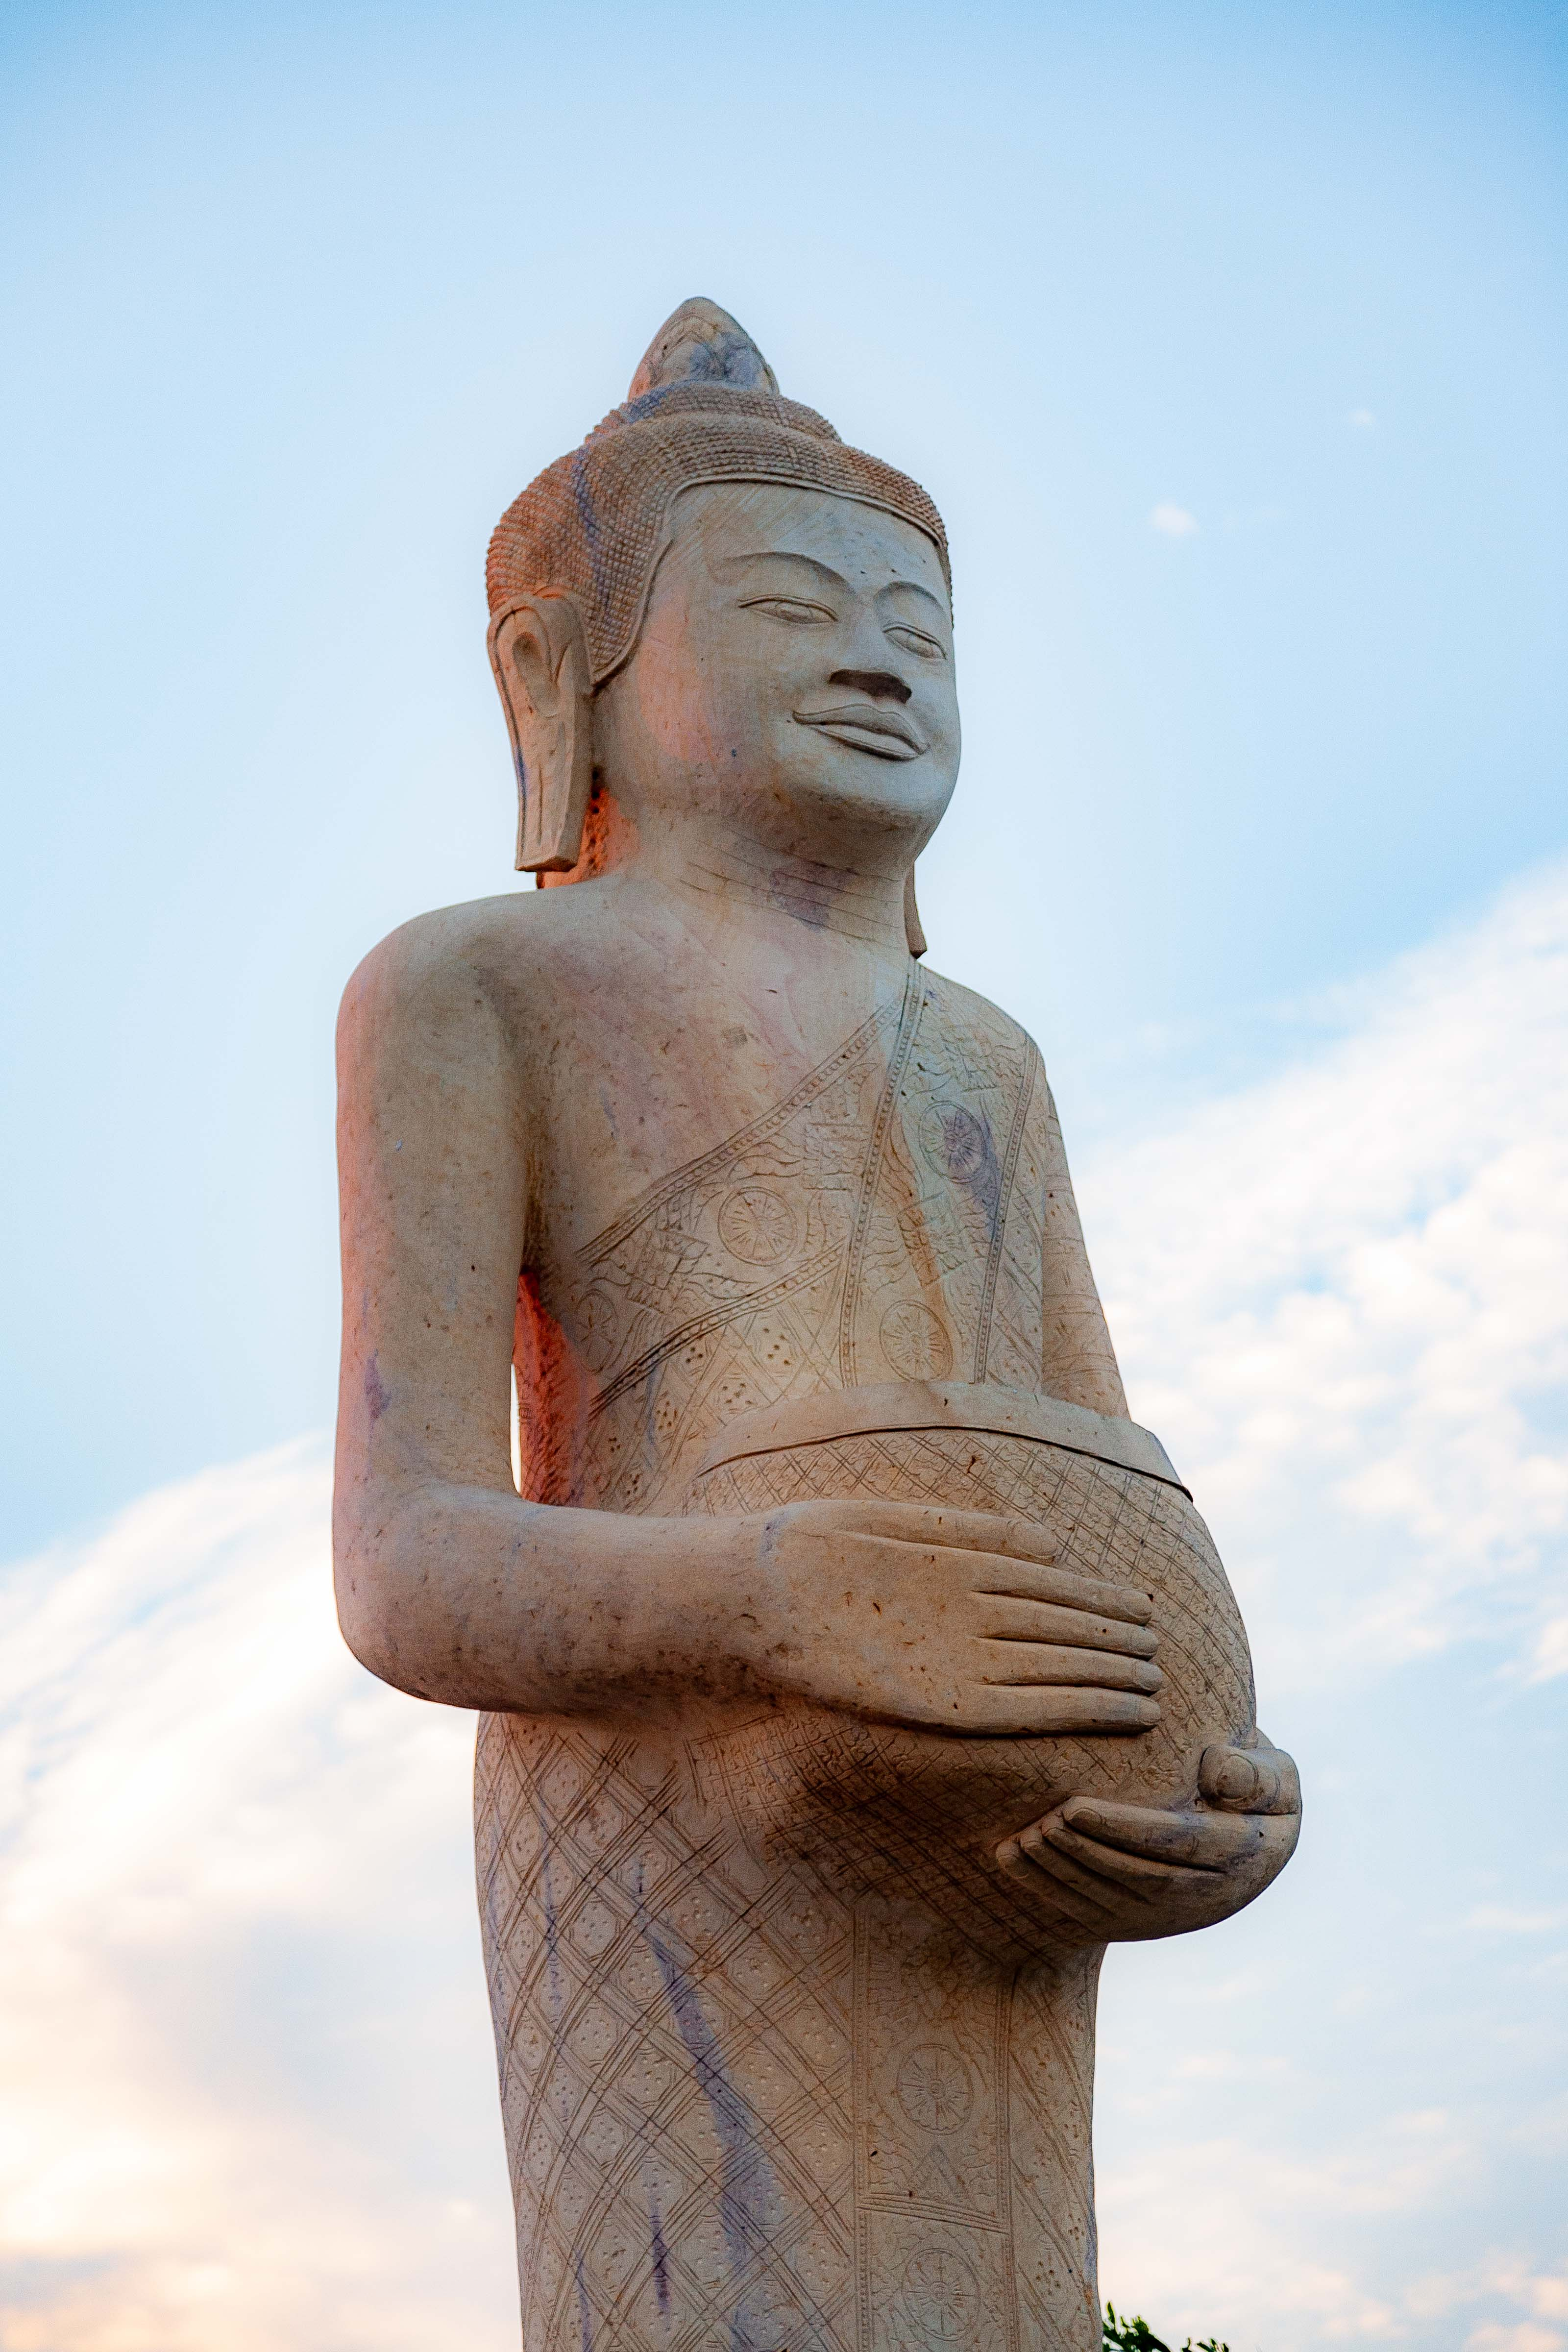 Cambodia, Kaoh Kong Prov, Country Statue, 2010, IMG 5086